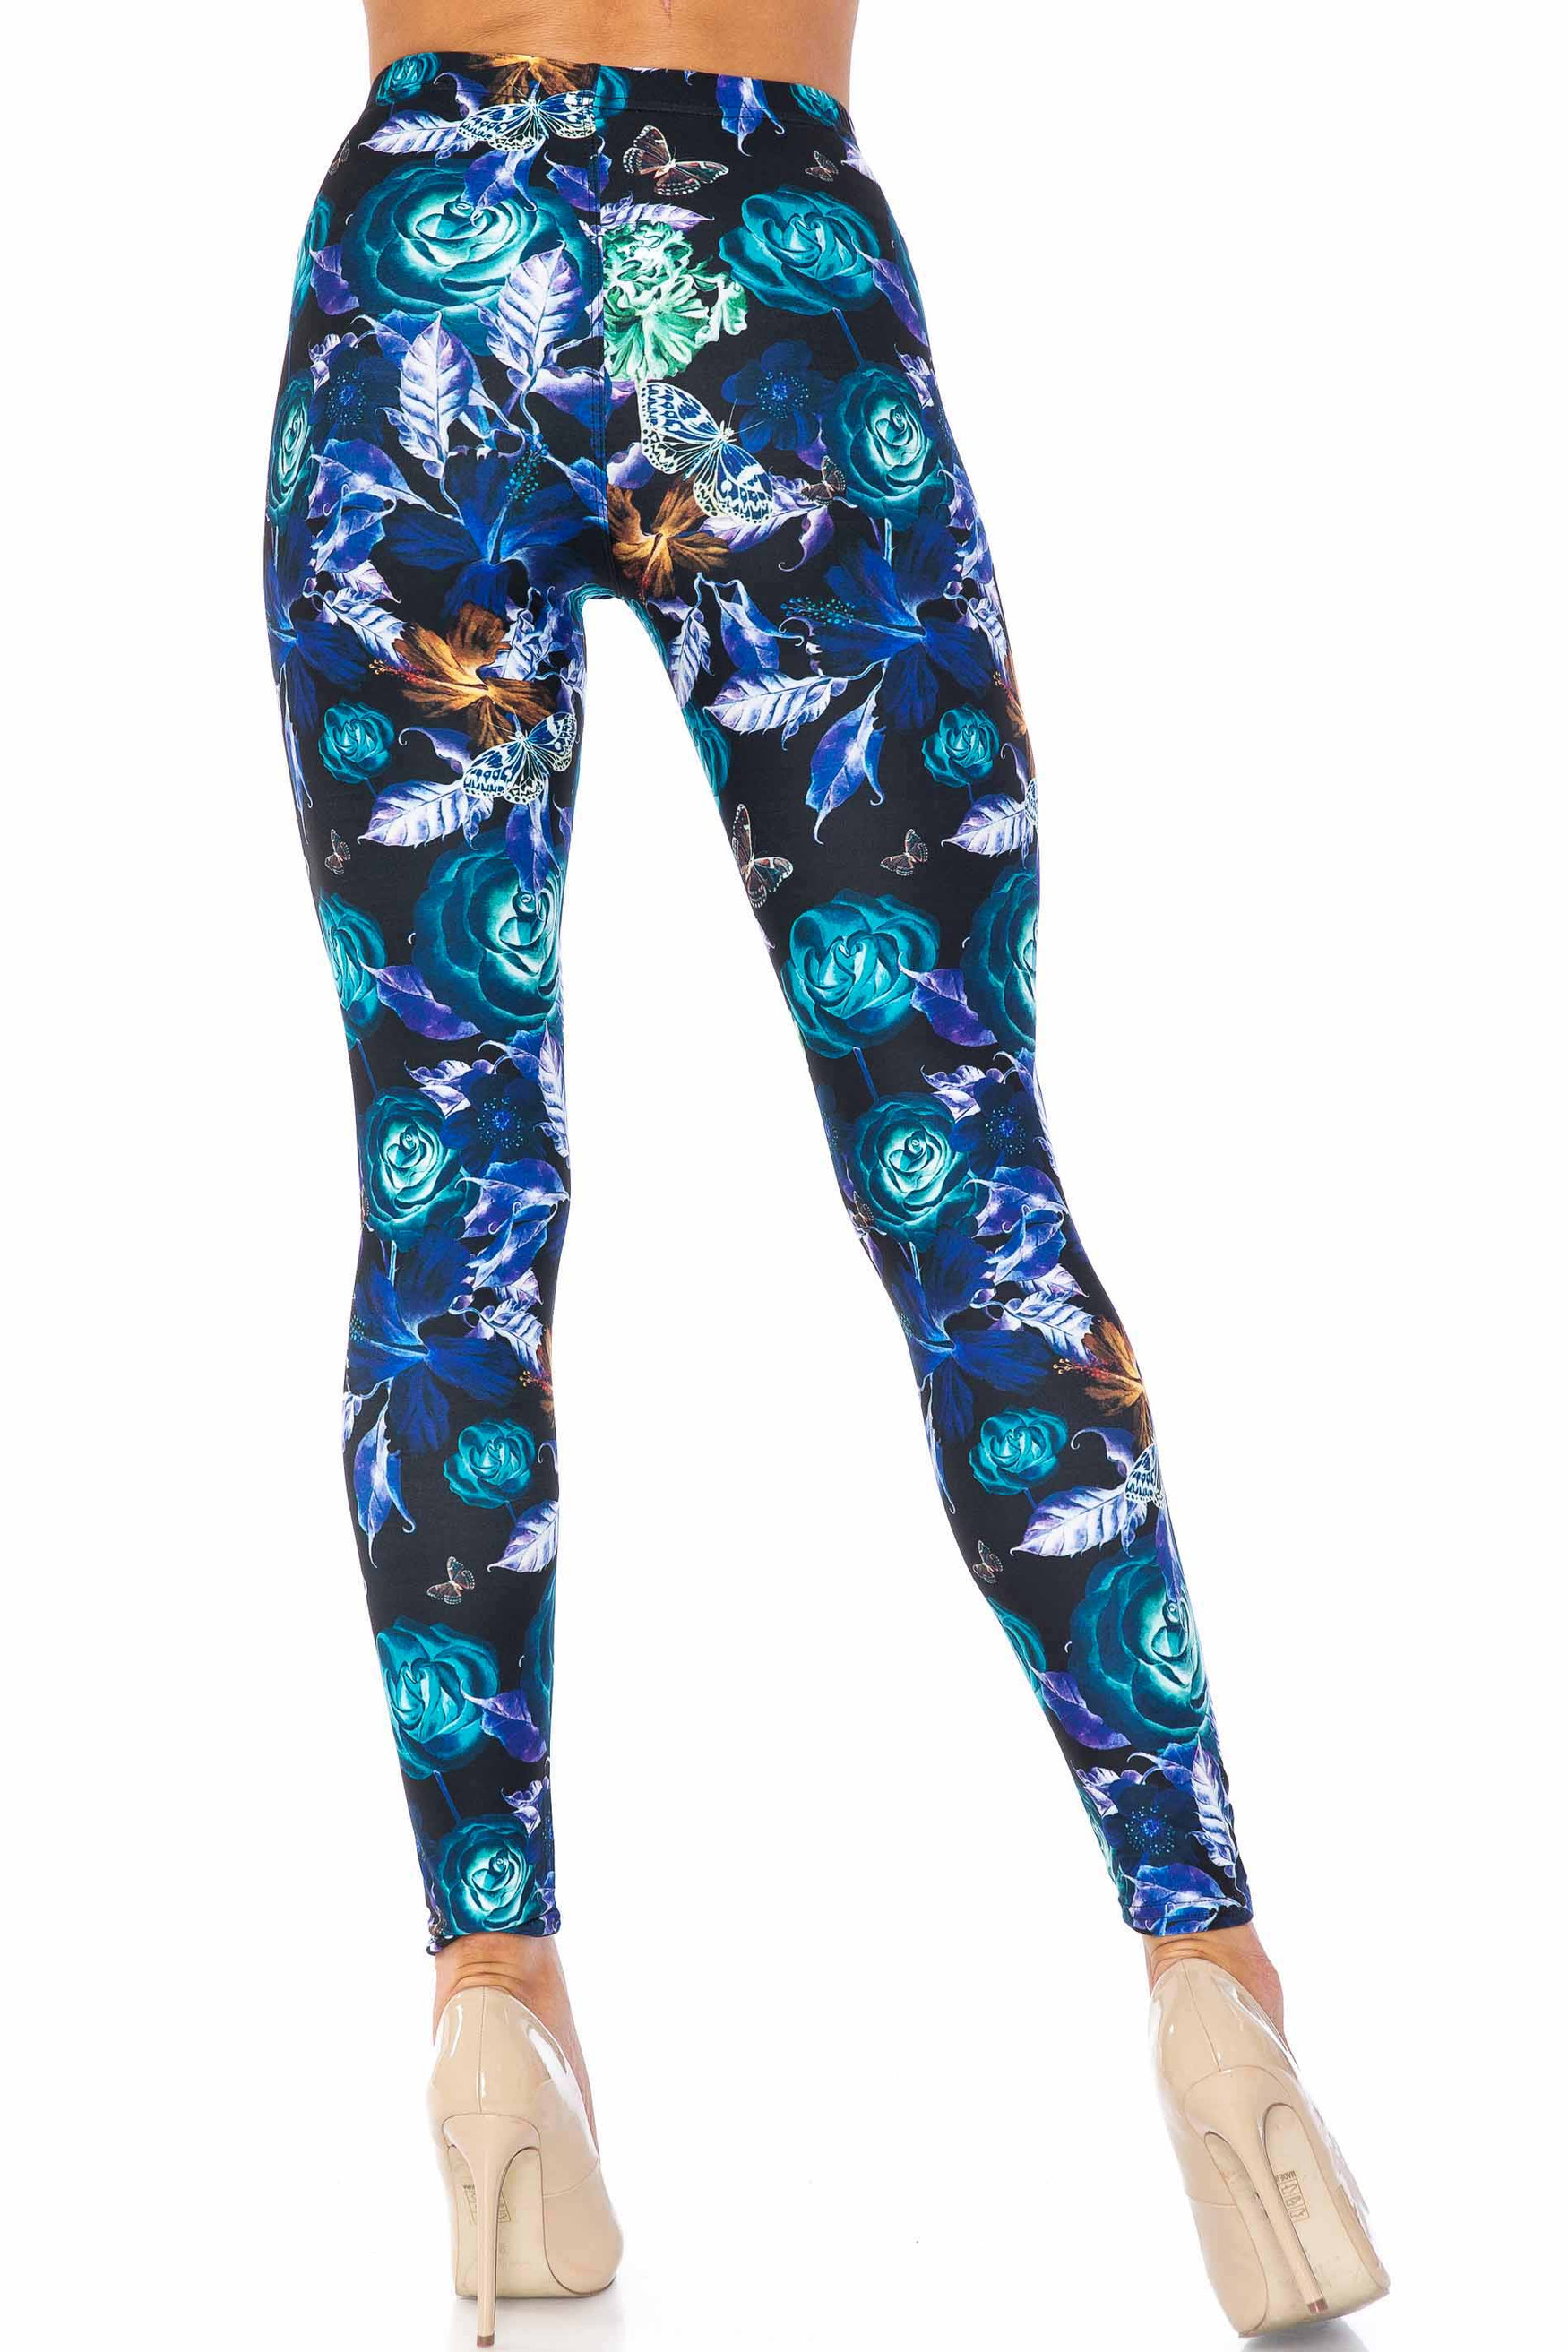 Creamy Soft Electric Blue Floral Butterfly Kids Leggings - USA Fashion™